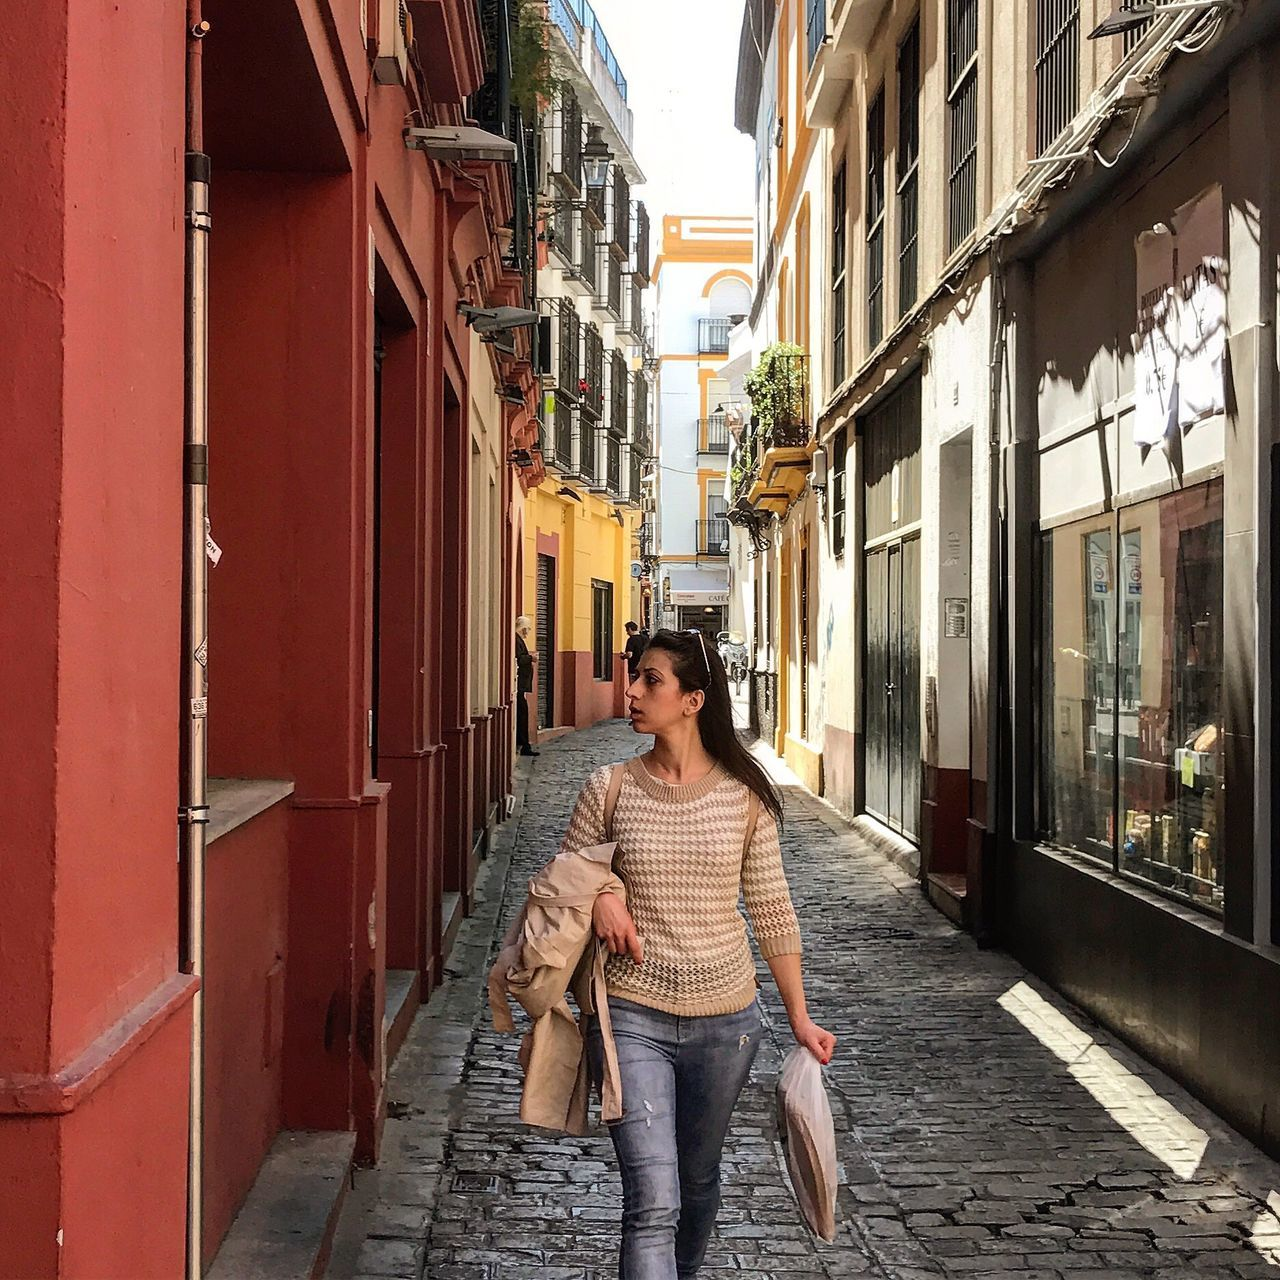 building exterior, two people, architecture, young women, young adult, built structure, casual clothing, outdoors, day, real people, front view, togetherness, smiling, looking at camera, leisure activity, full length, portrait, beautiful woman, women, lifestyles, city, adult, adults only, people